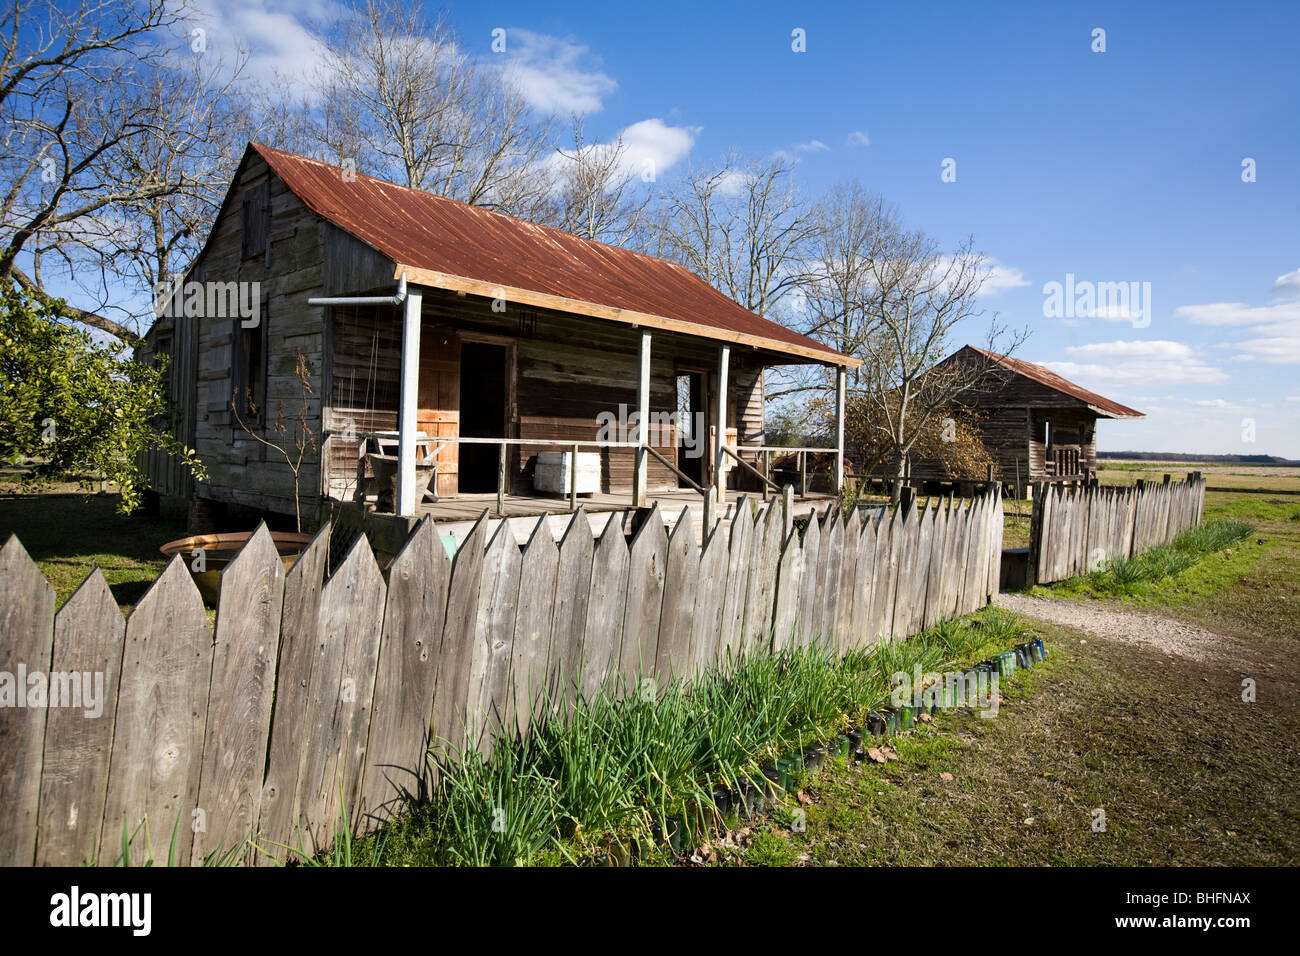 Slave Cabins At Laura Plantation, River Road, North Of New Orleans,  Louisiana, Home Of Brer Rabbit Stories